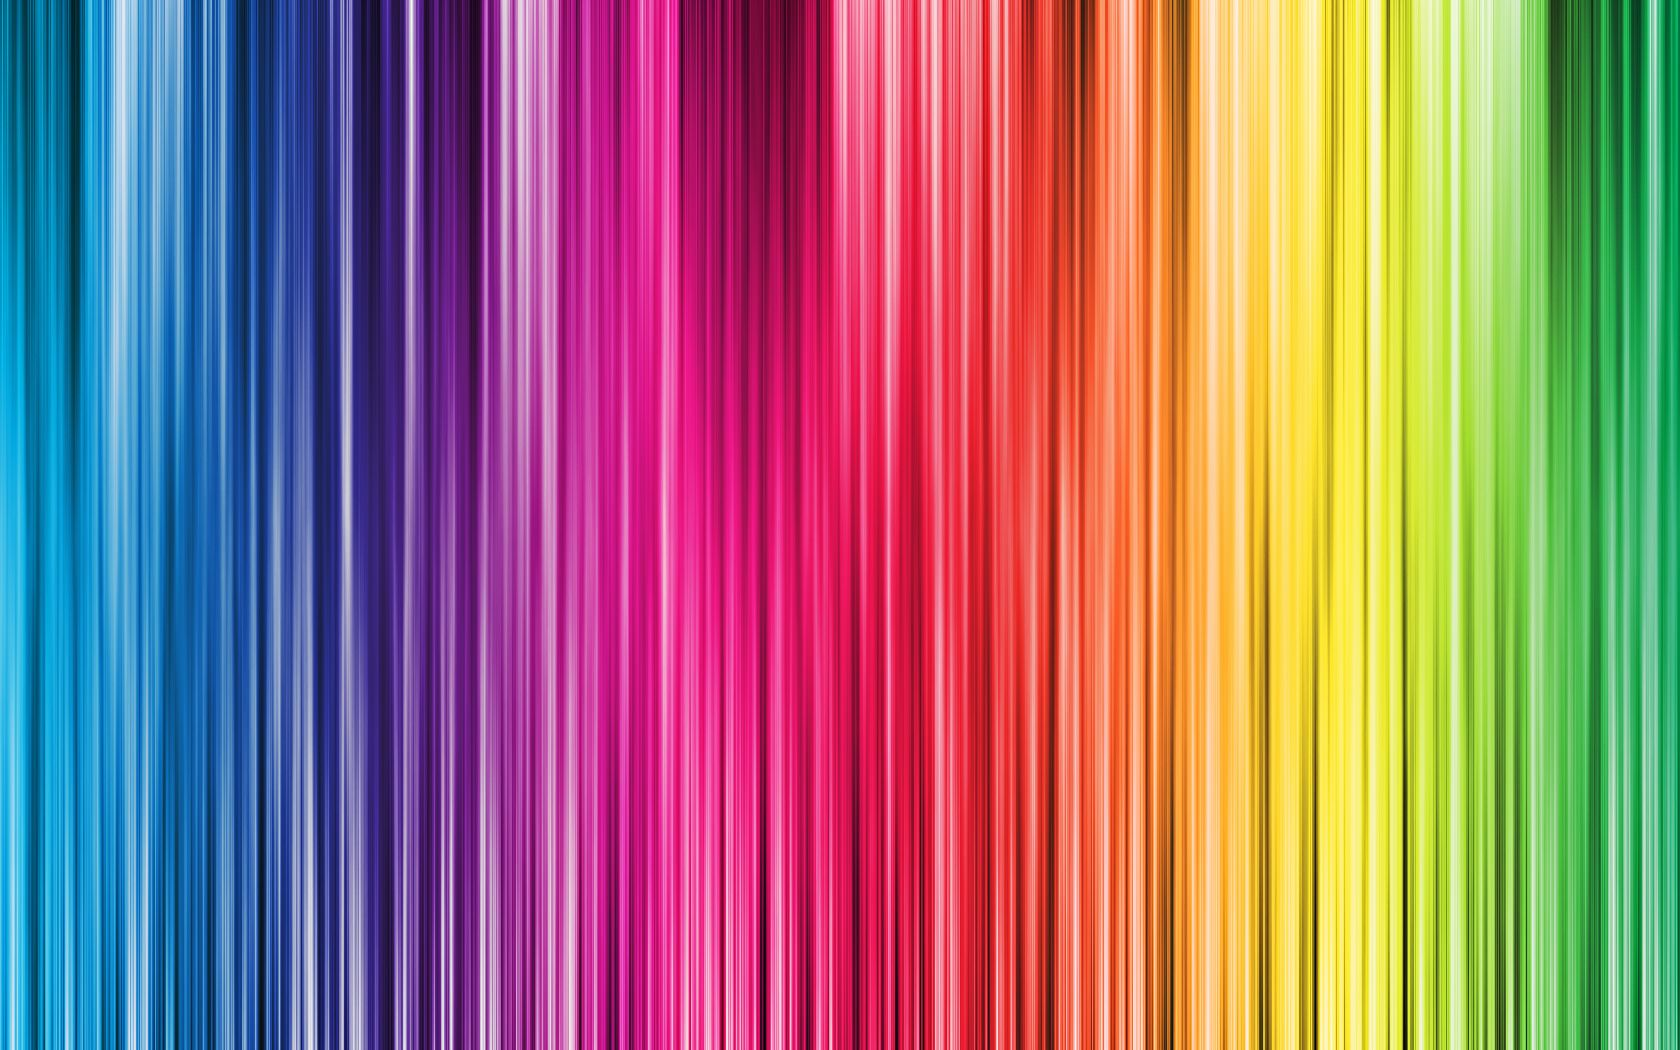 Hd Multi Colored Lines By Darkdragon15 On Deviantart Rainbow Wallpaper Color Meanings Colorful Wallpaper